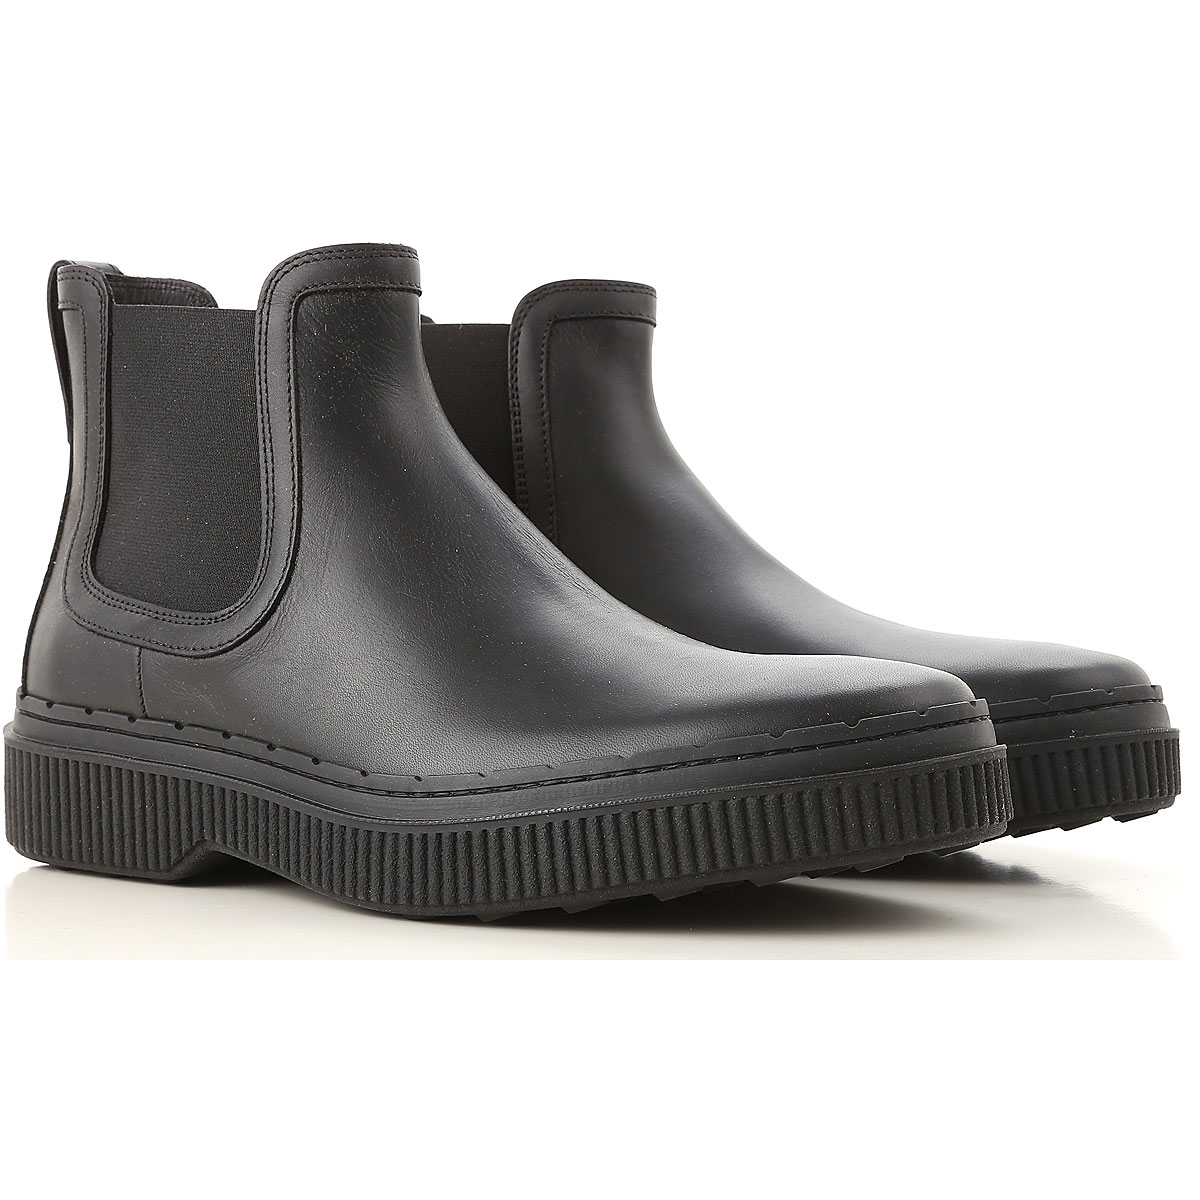 Tods Chelsea Boots for Men On Sale Black - GOOFASH